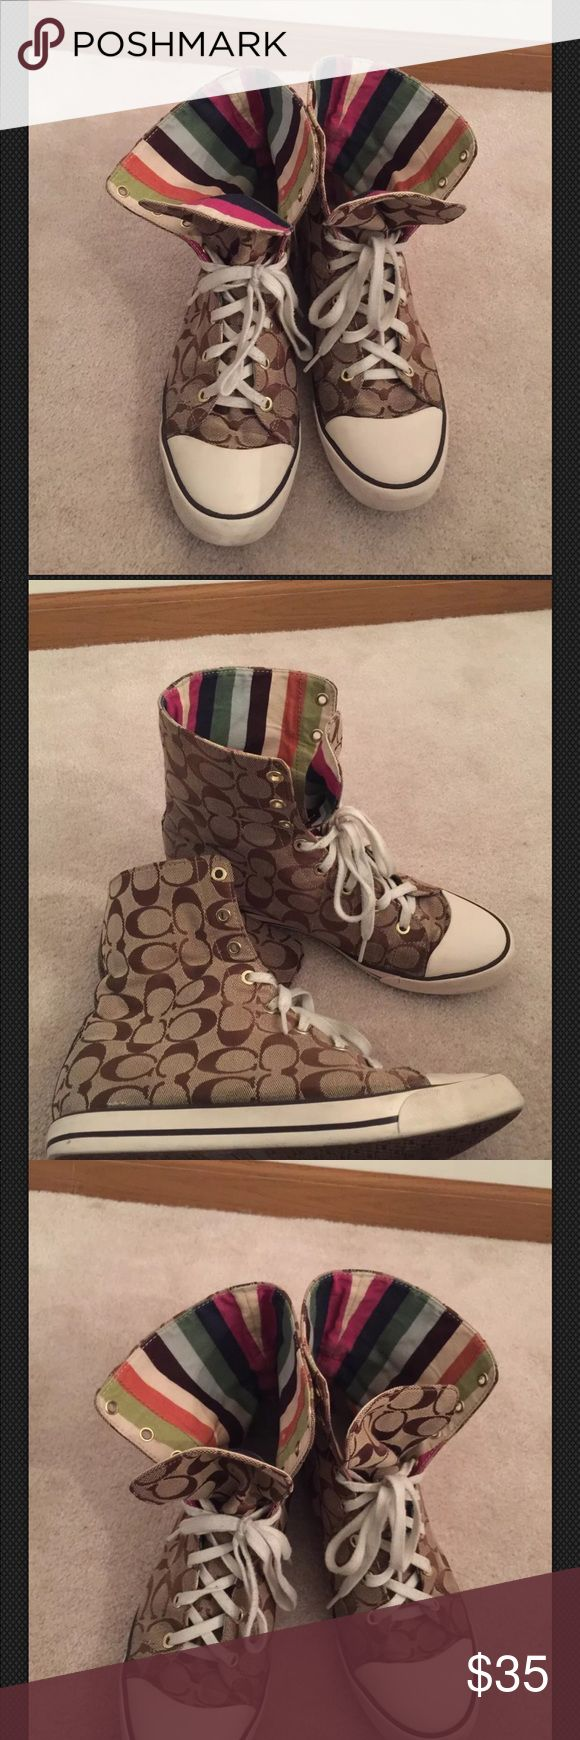 Booney Coach Sneakers Gently used booney high top coach sneakers Coach Shoes Sneakers